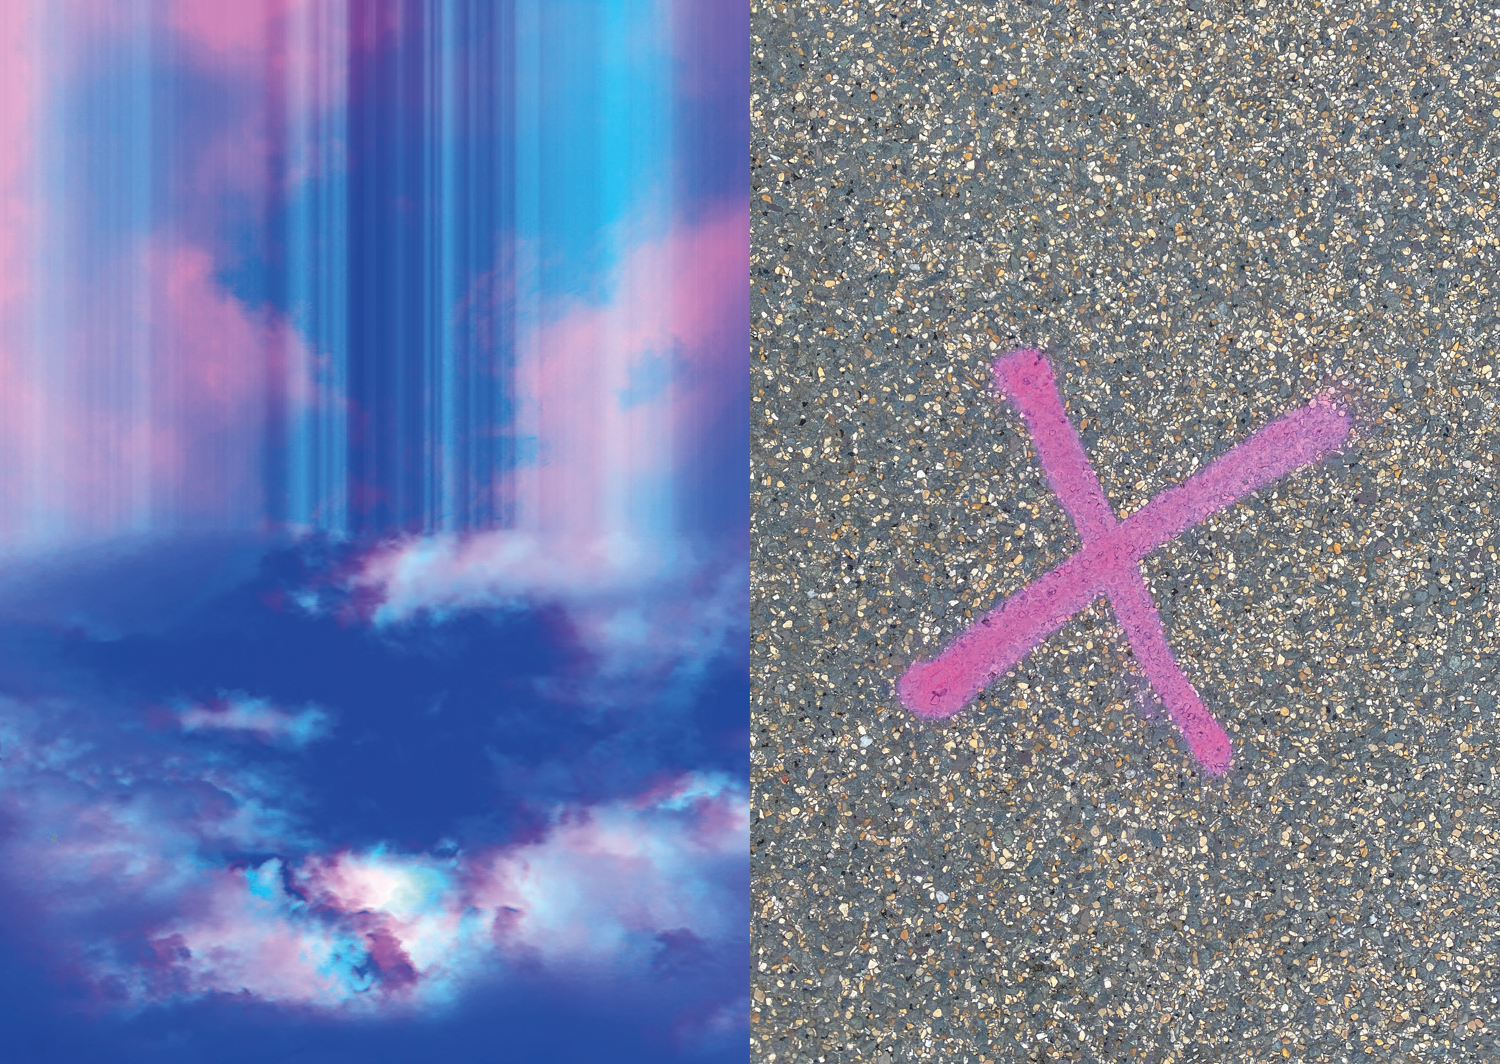 Image with distorted clouds in a blue sky to the left and a spray painted pink X on a road surface to the right